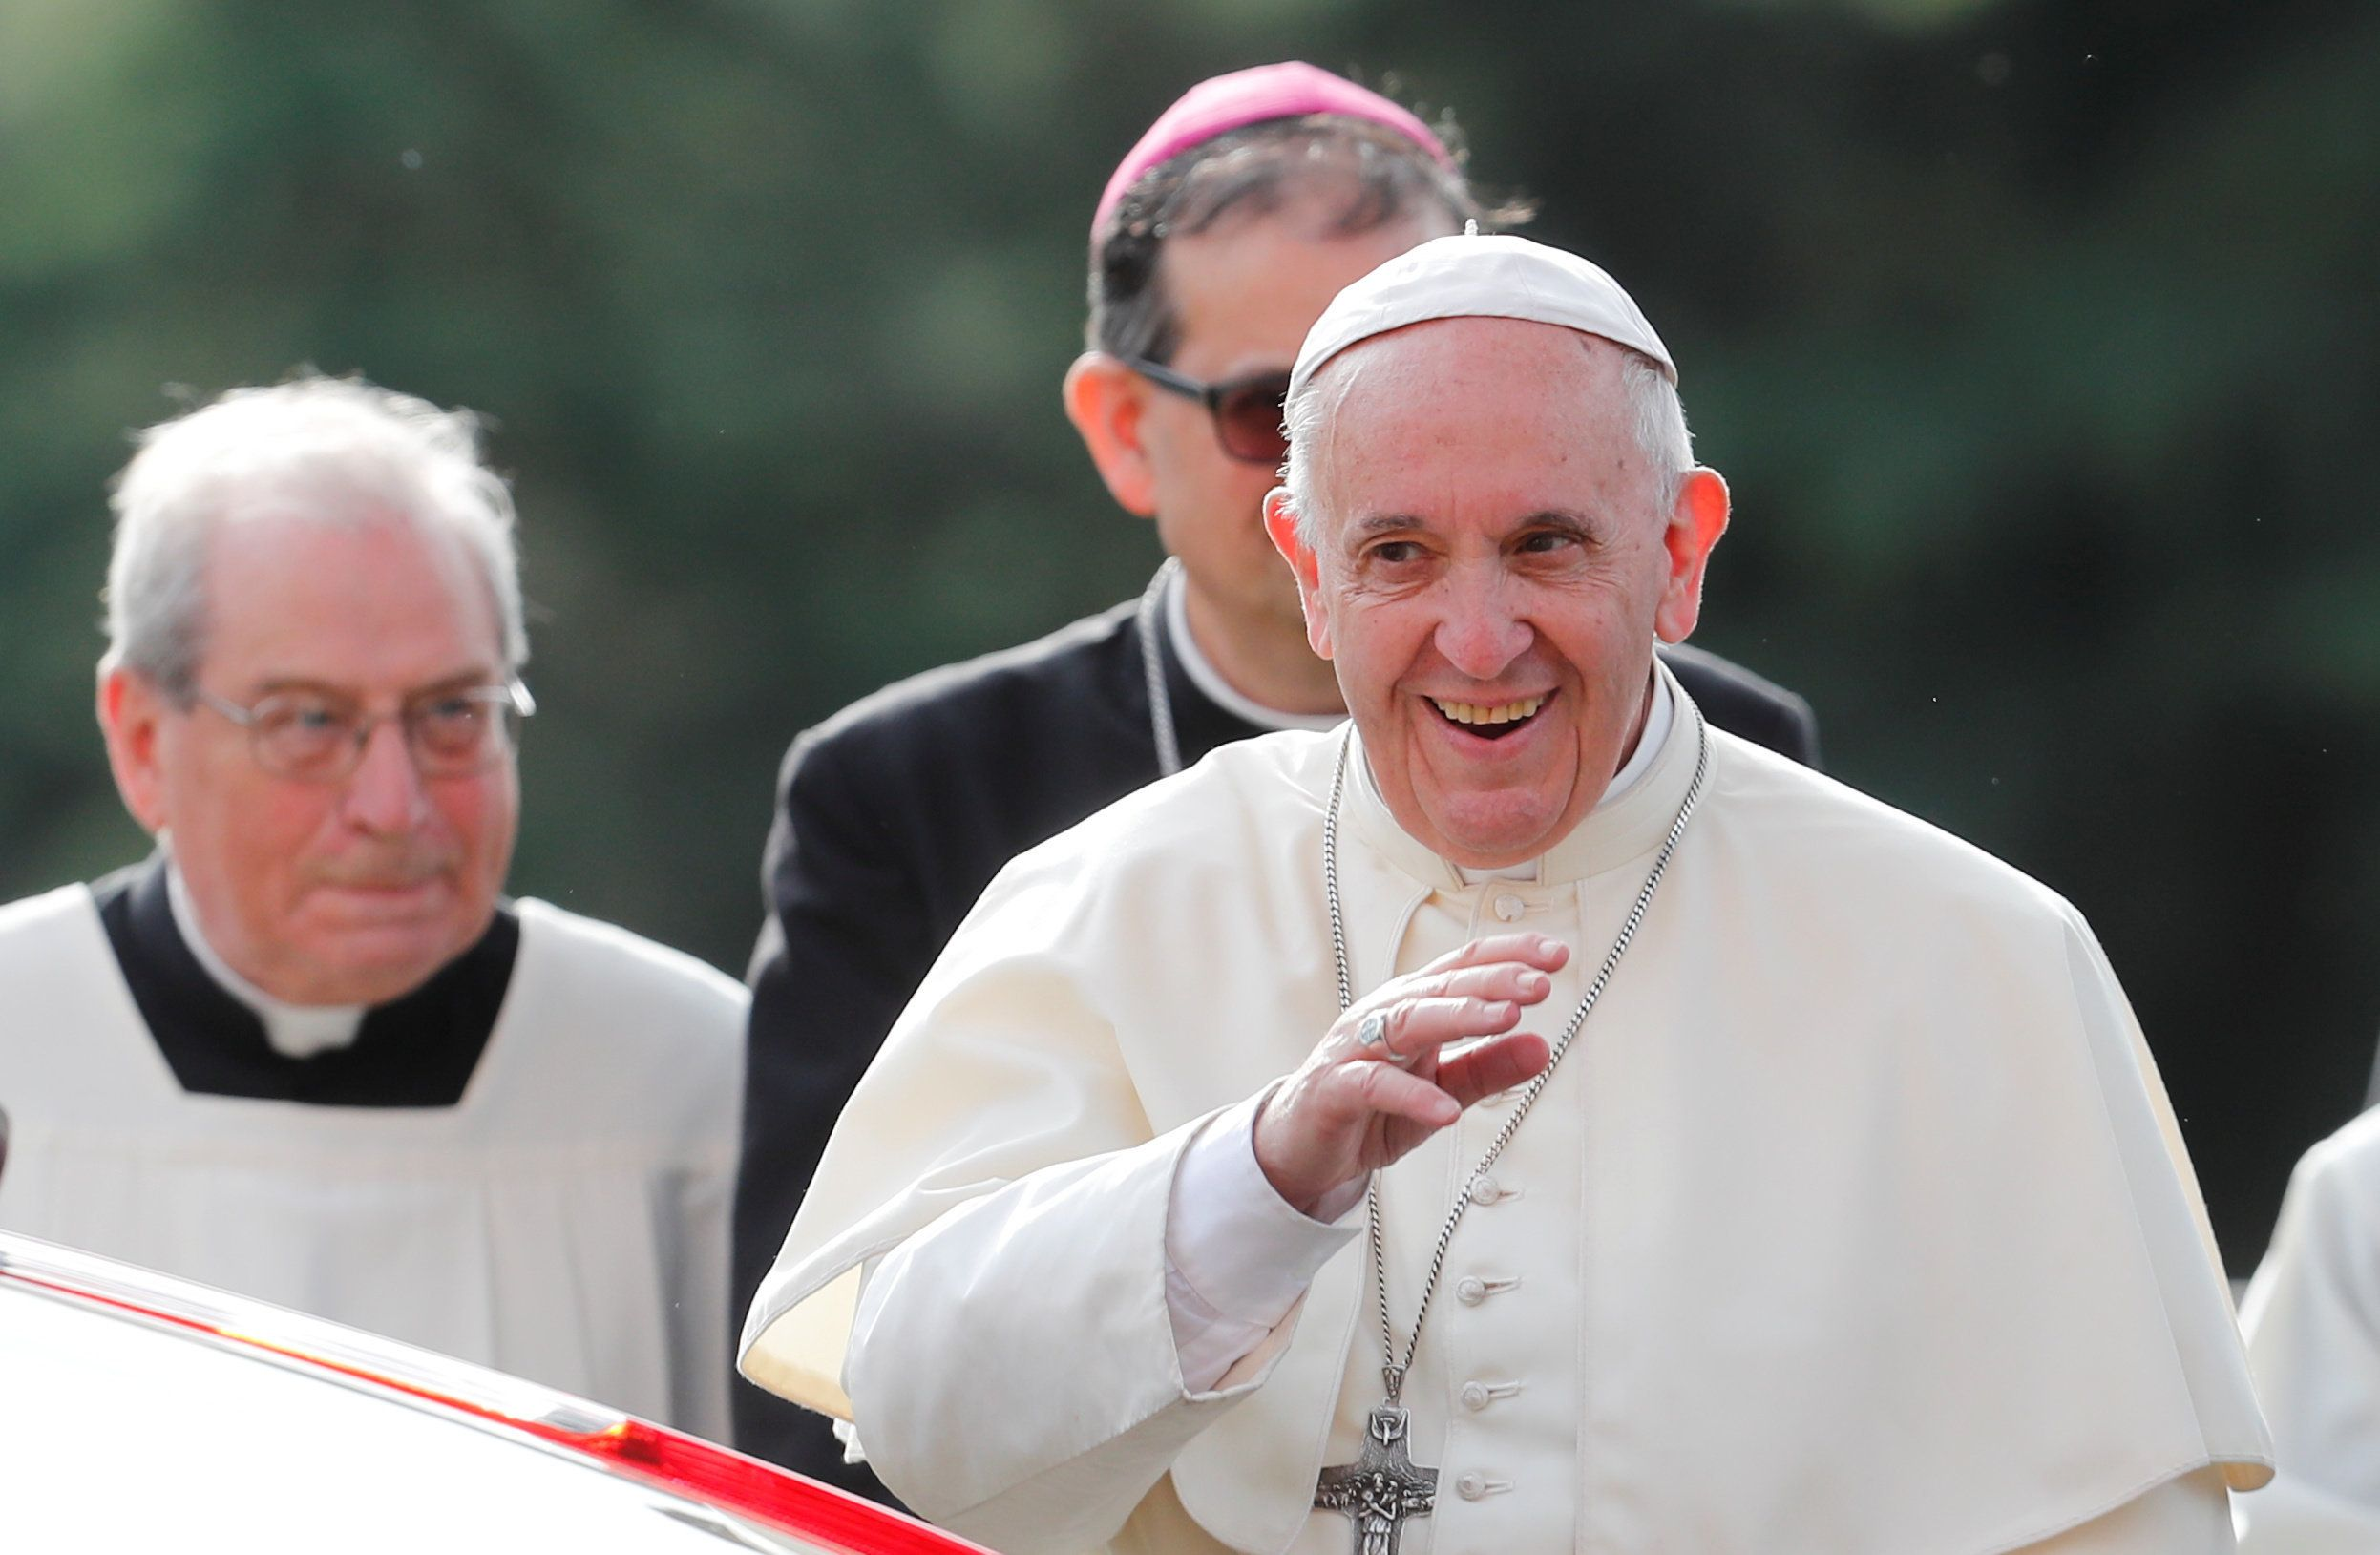 Pope francis speech on homosexuality in japan